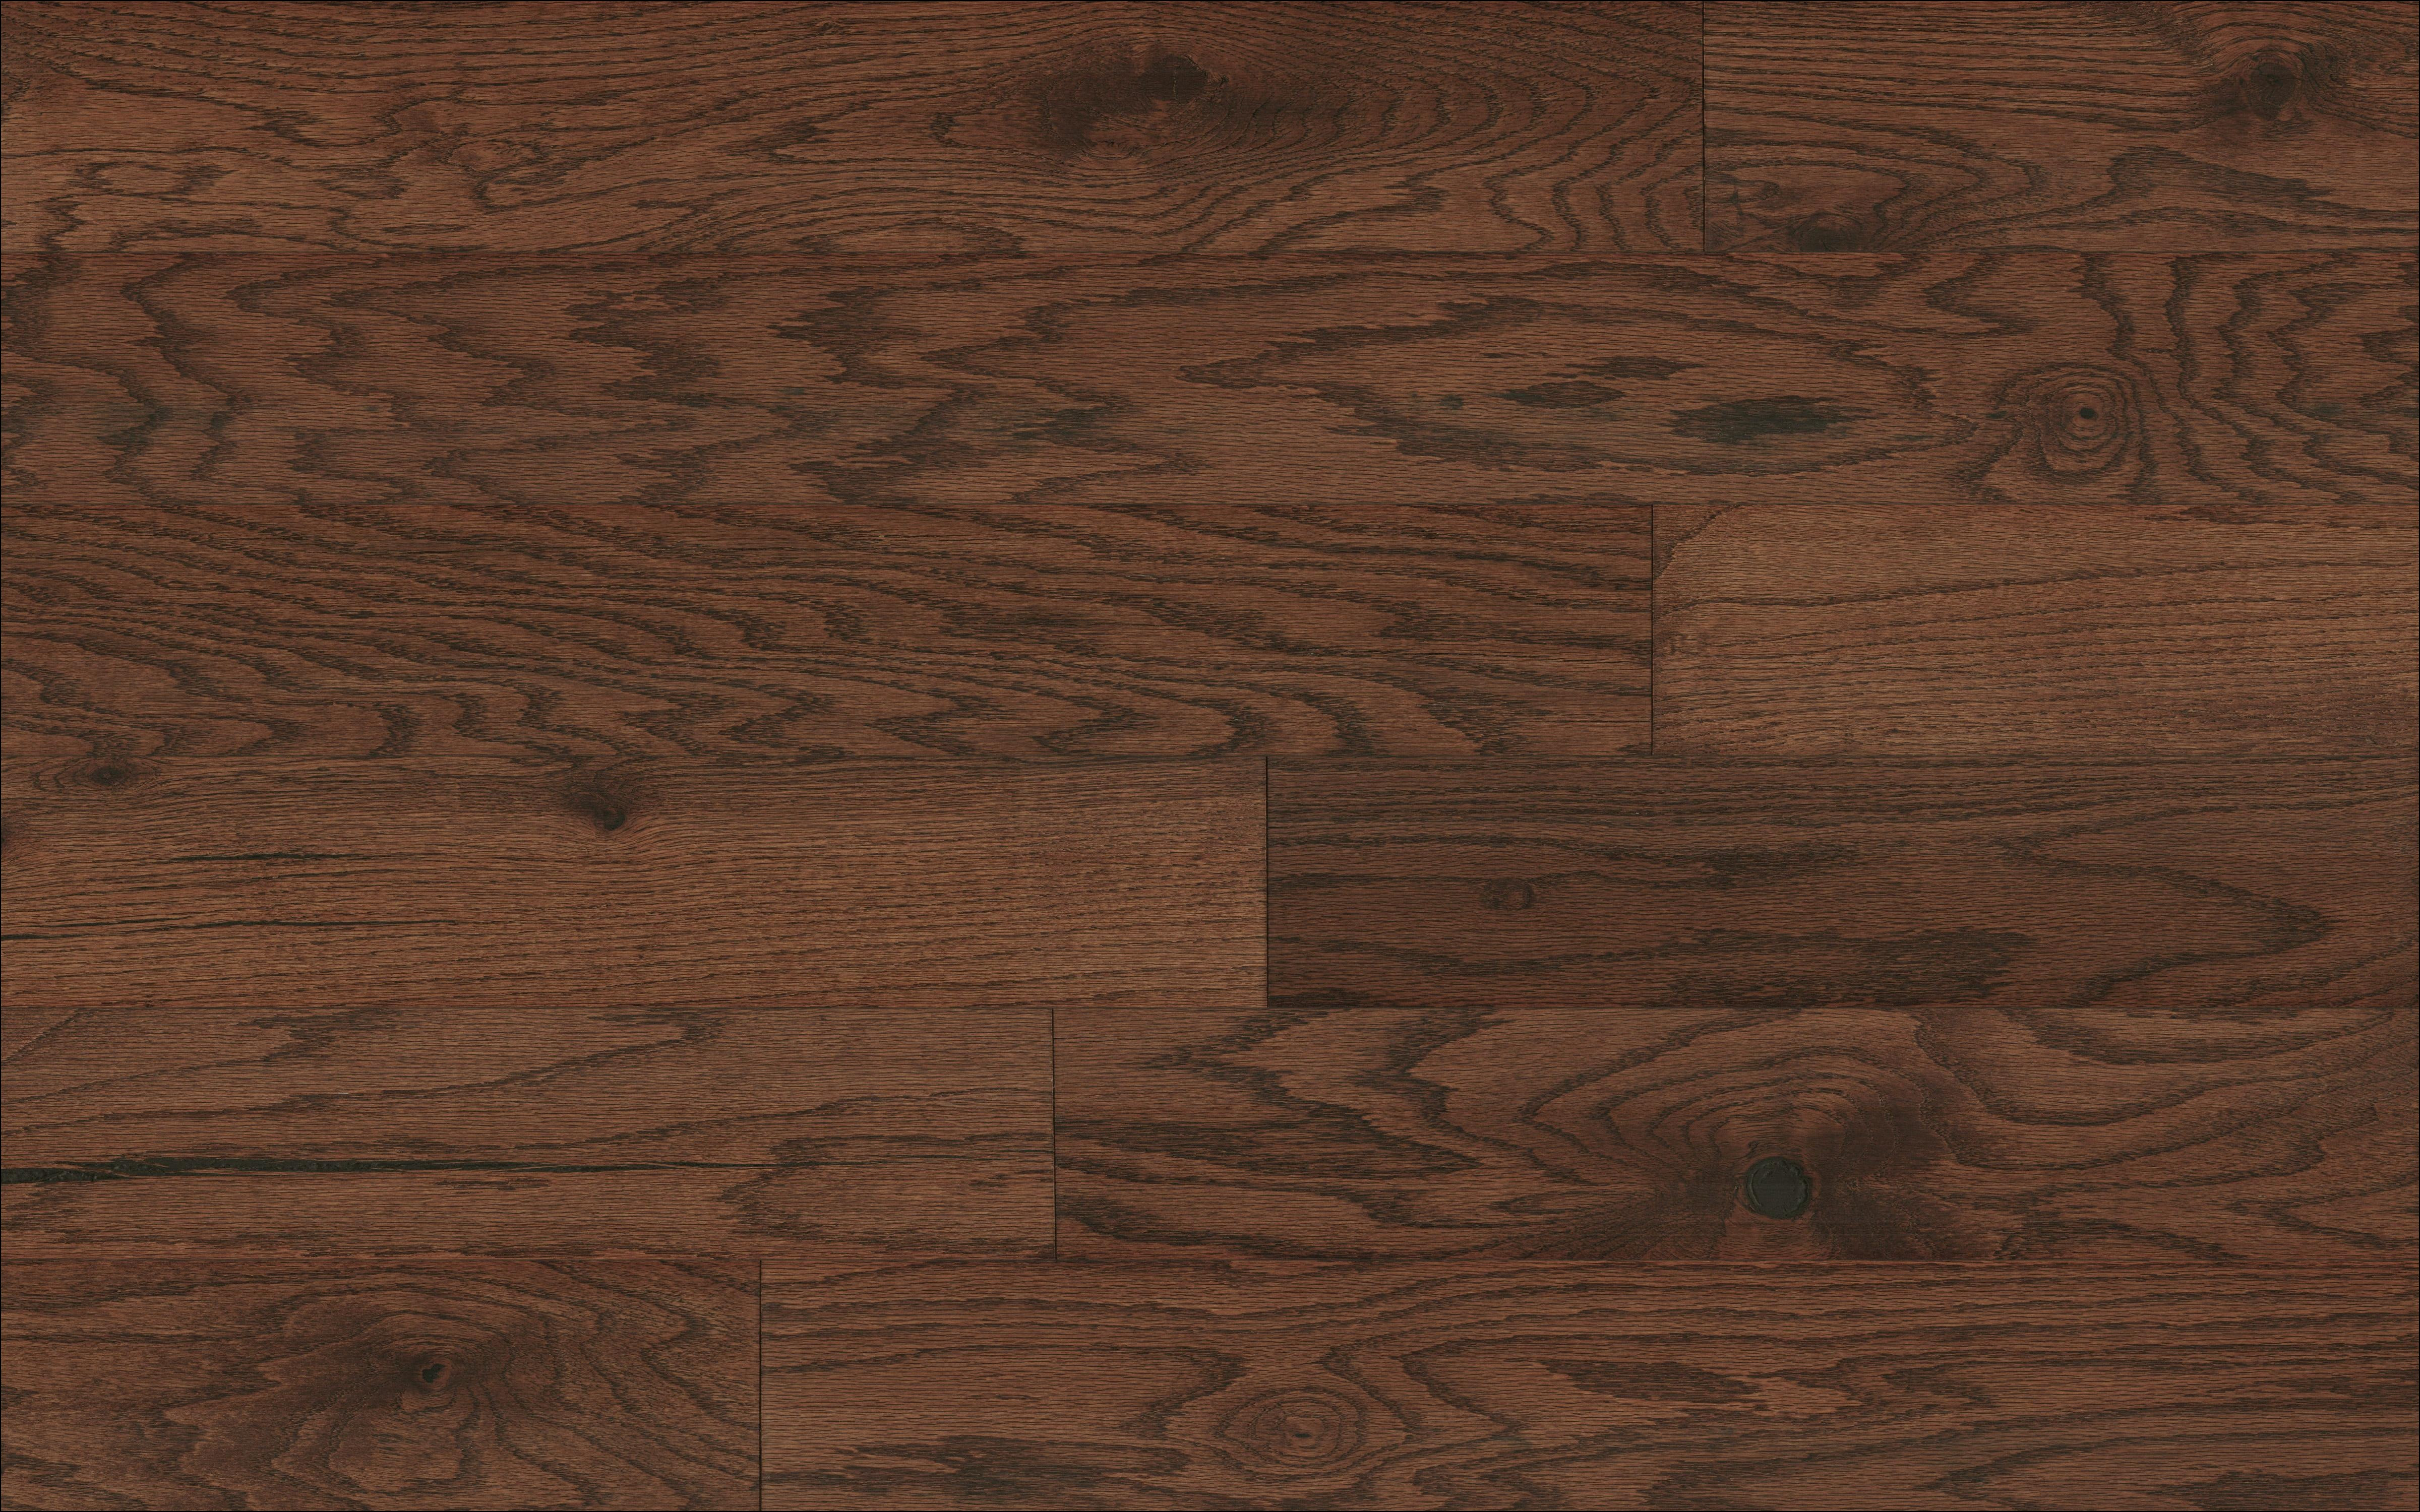 maple engineered hardwood flooring pros and cons of best place flooring ideas for best place to buy engineered hardwood flooring collection mullican devonshire oak saddle 5 engineered hardwood